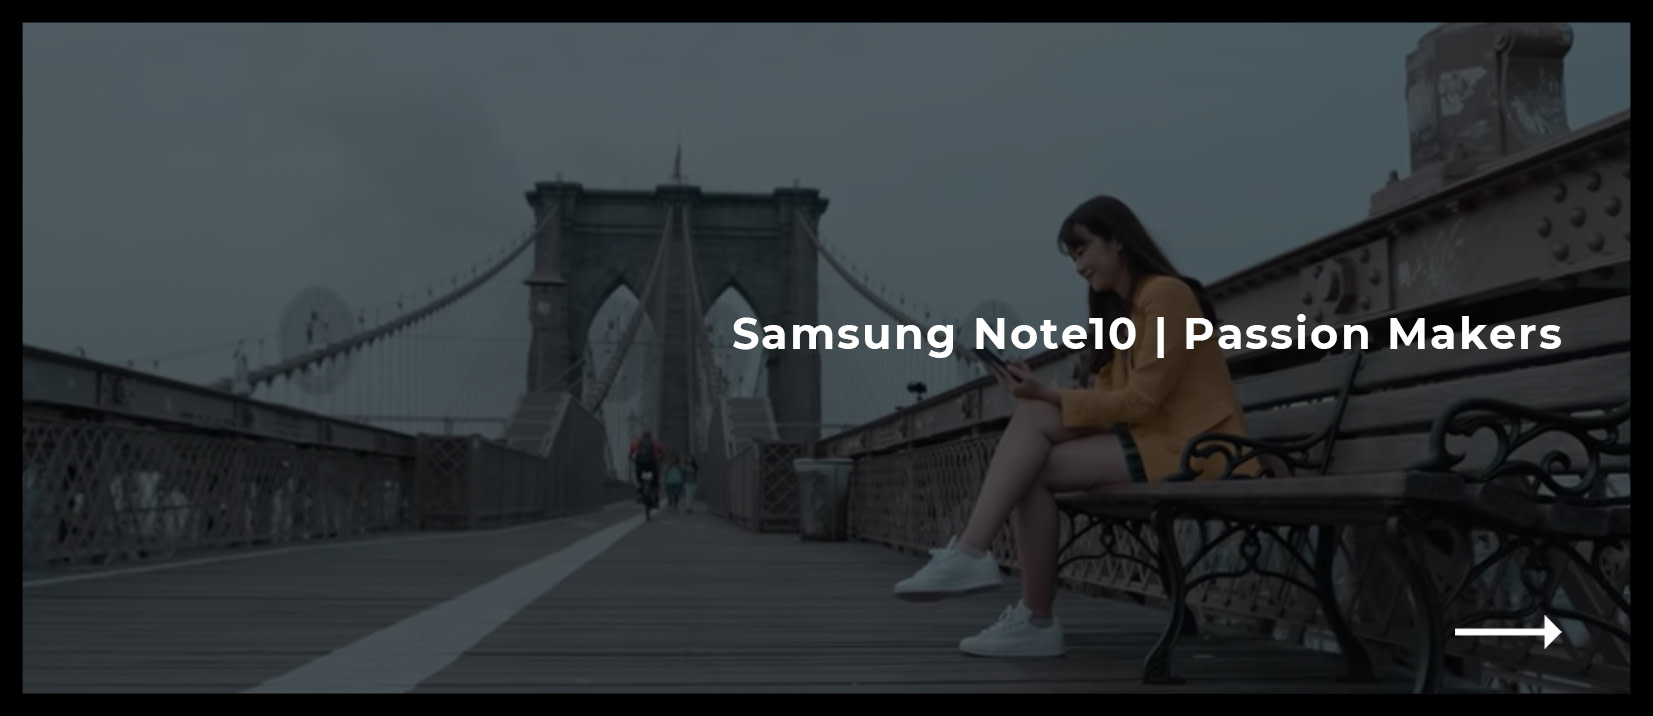 Samsung Note10 - Passion Makers